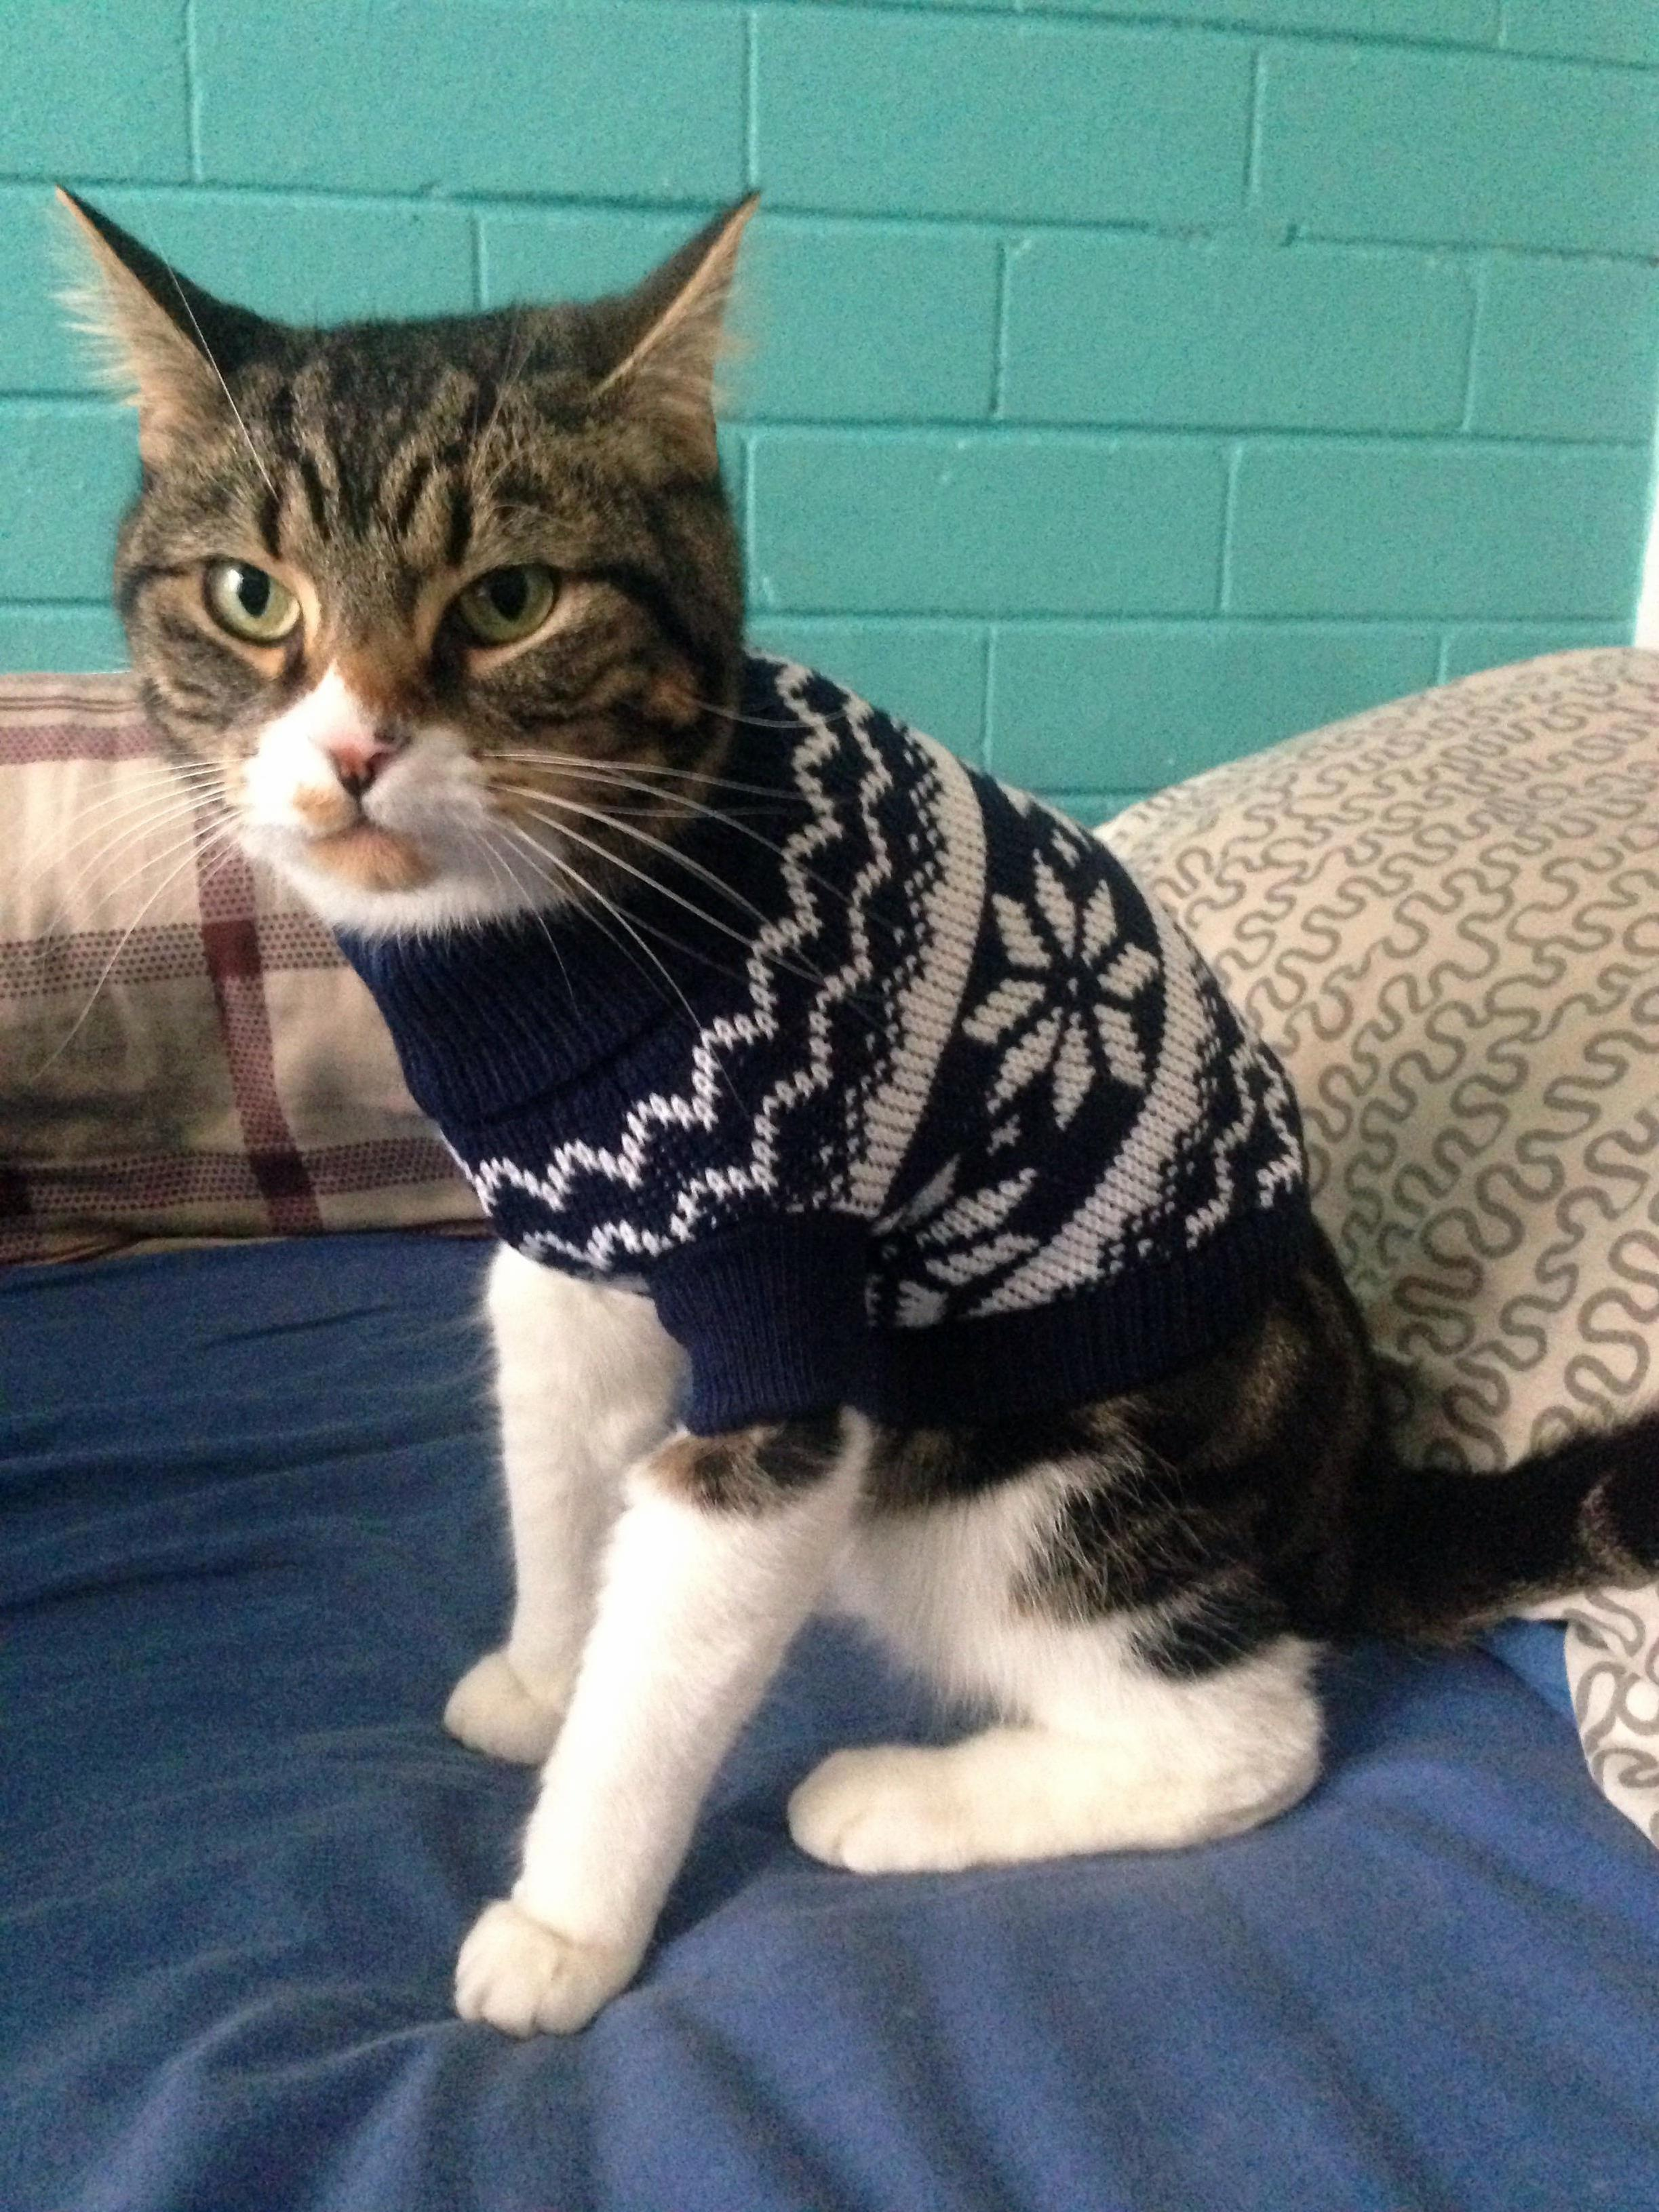 Model for a well fitted sweater